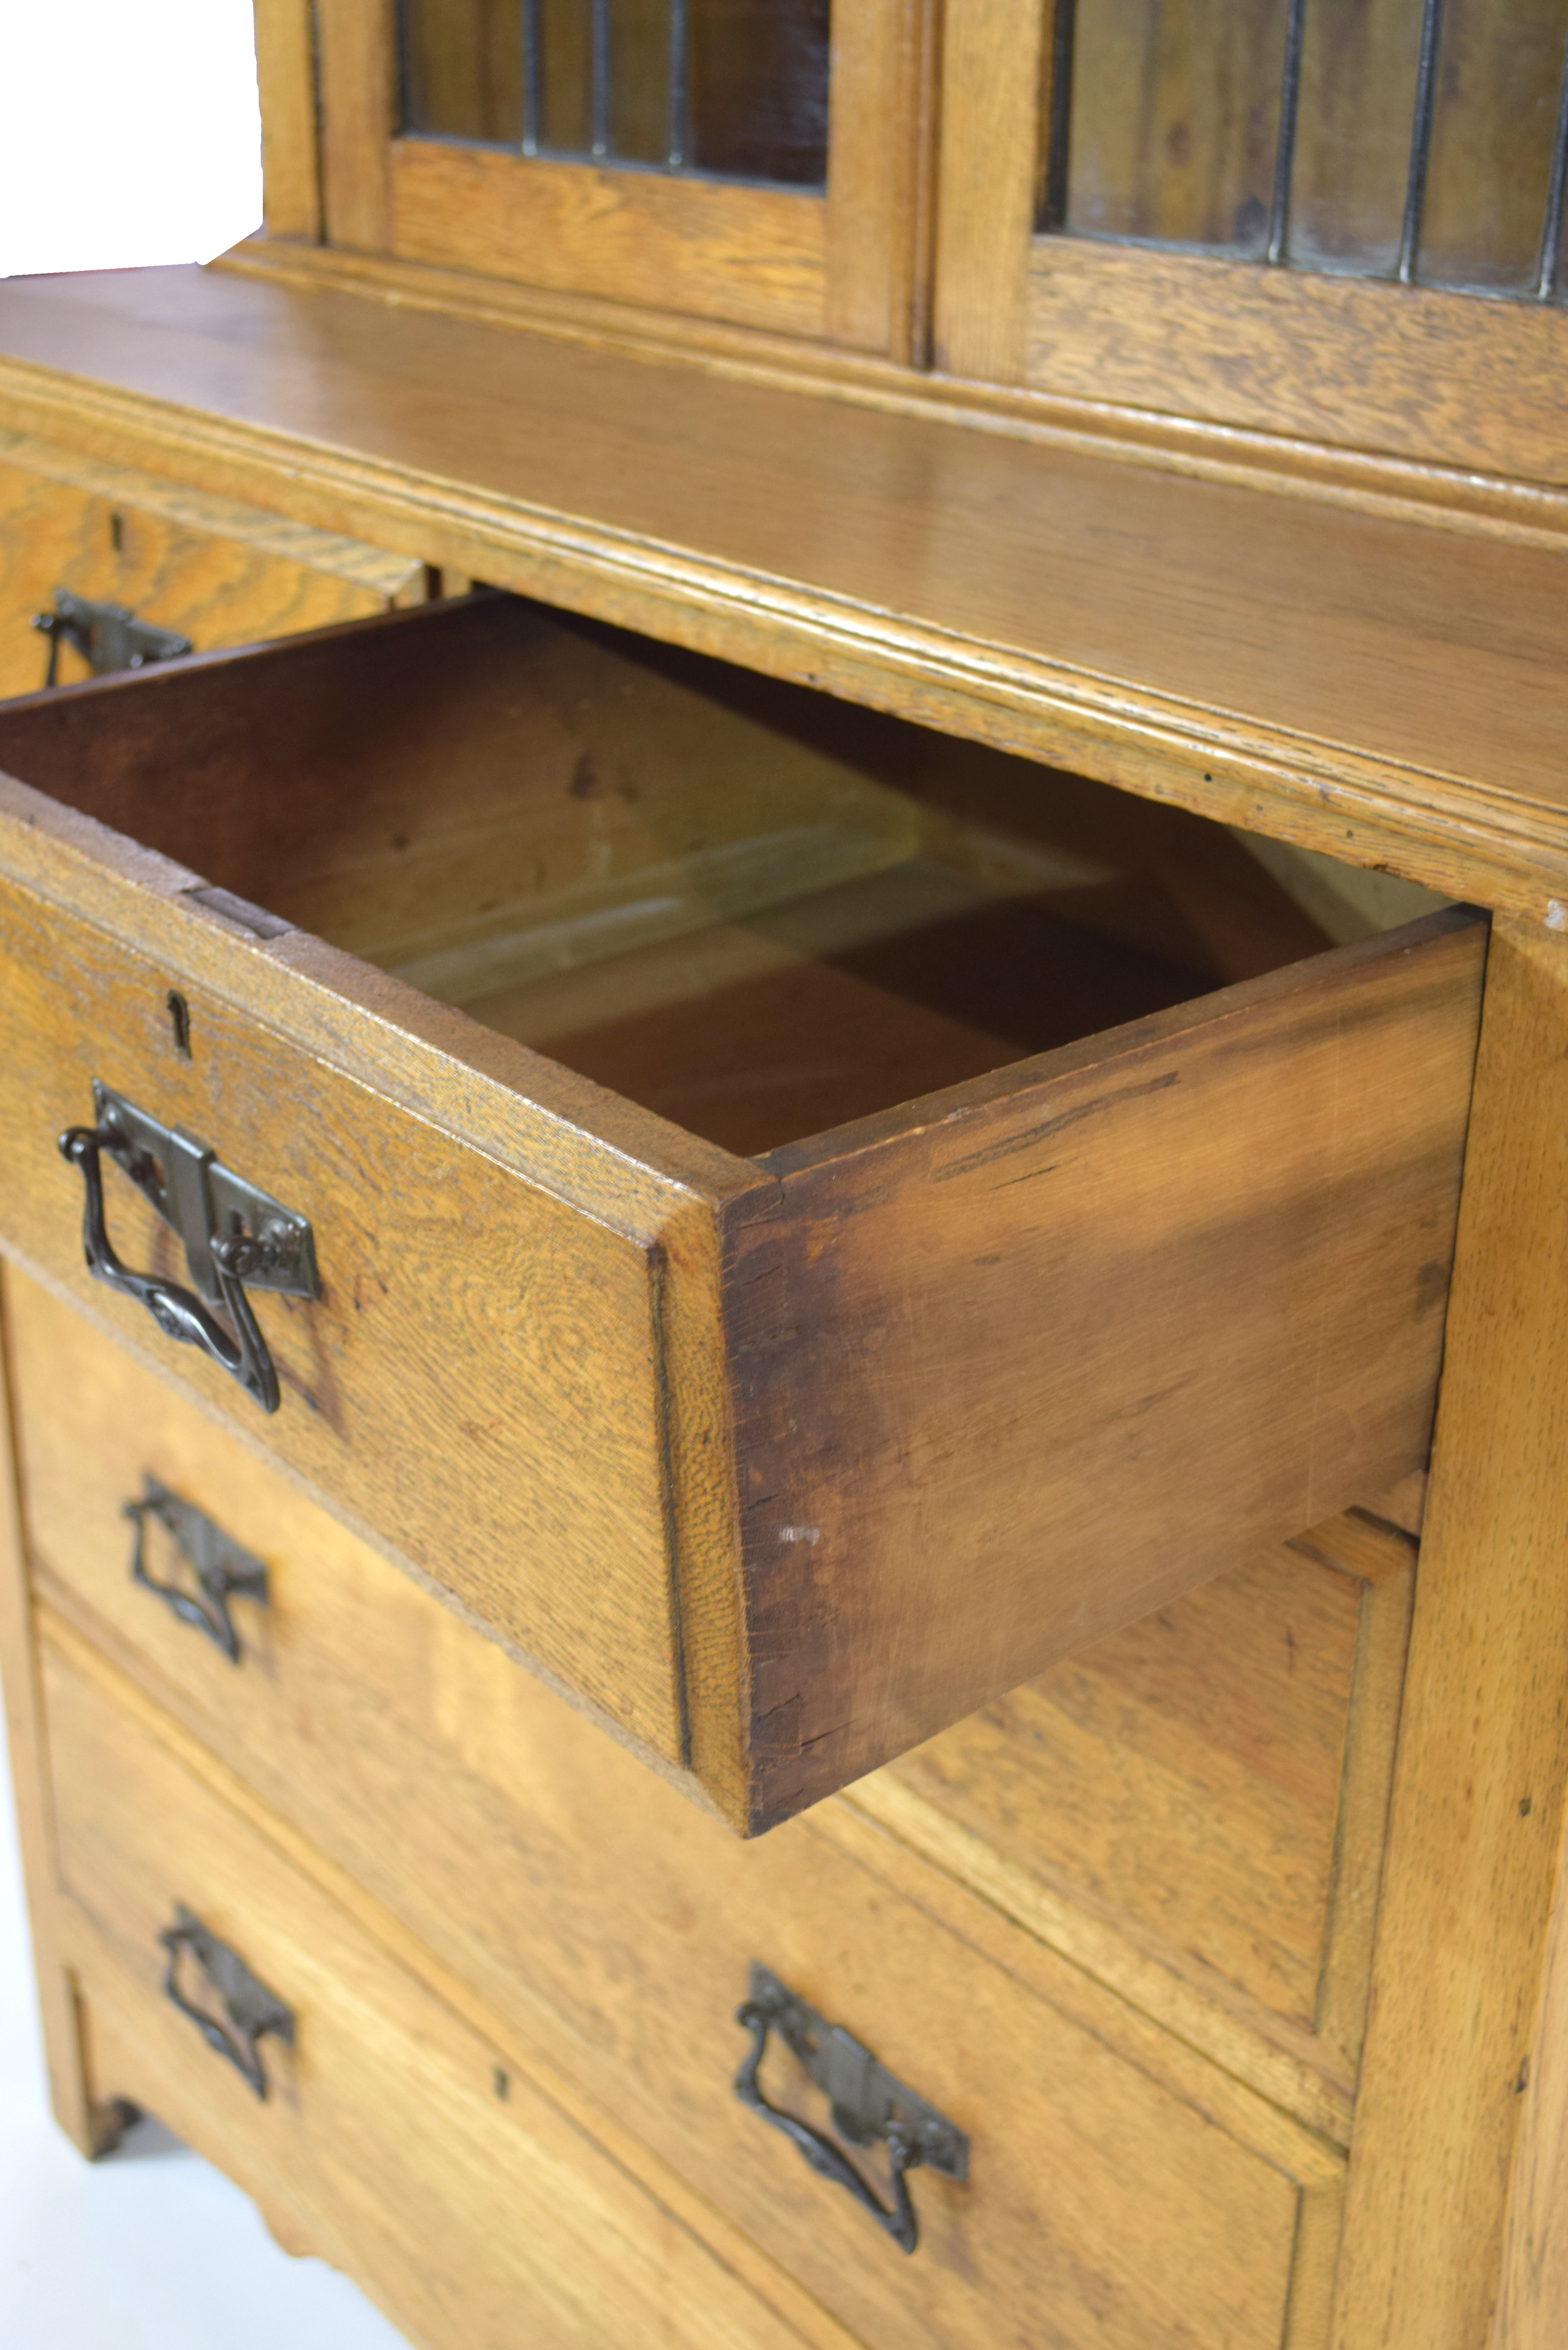 Late 19th century light oak two-piece cabinet, the top section with double glazed doors with Art - Image 3 of 7